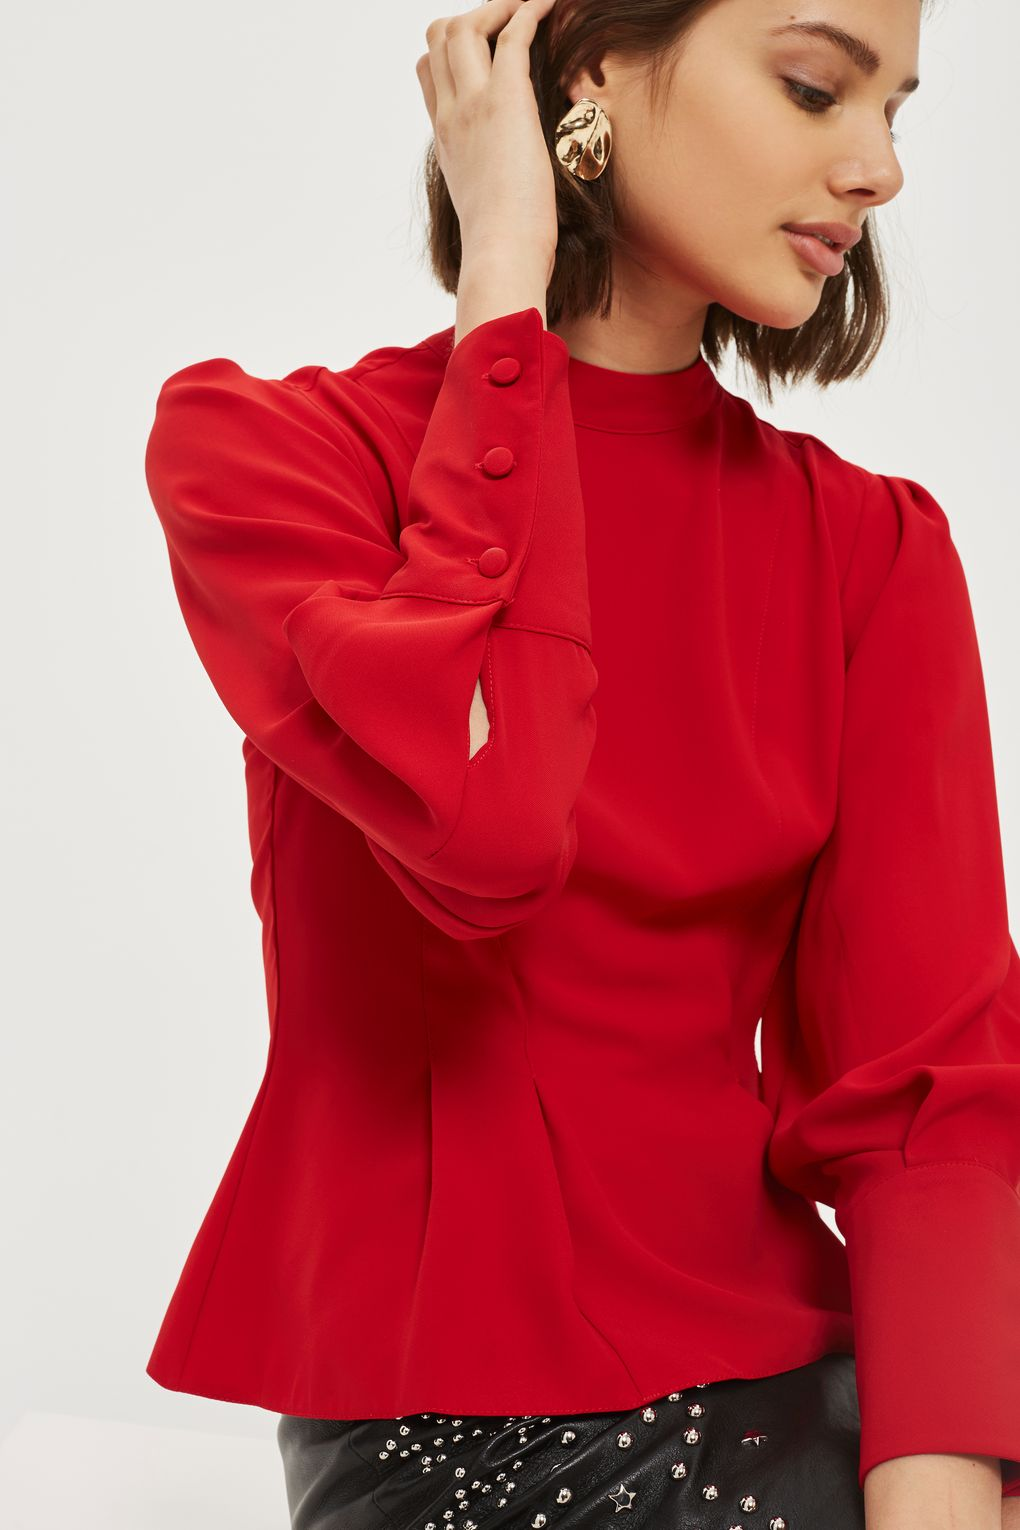 Red Blouse Topshop